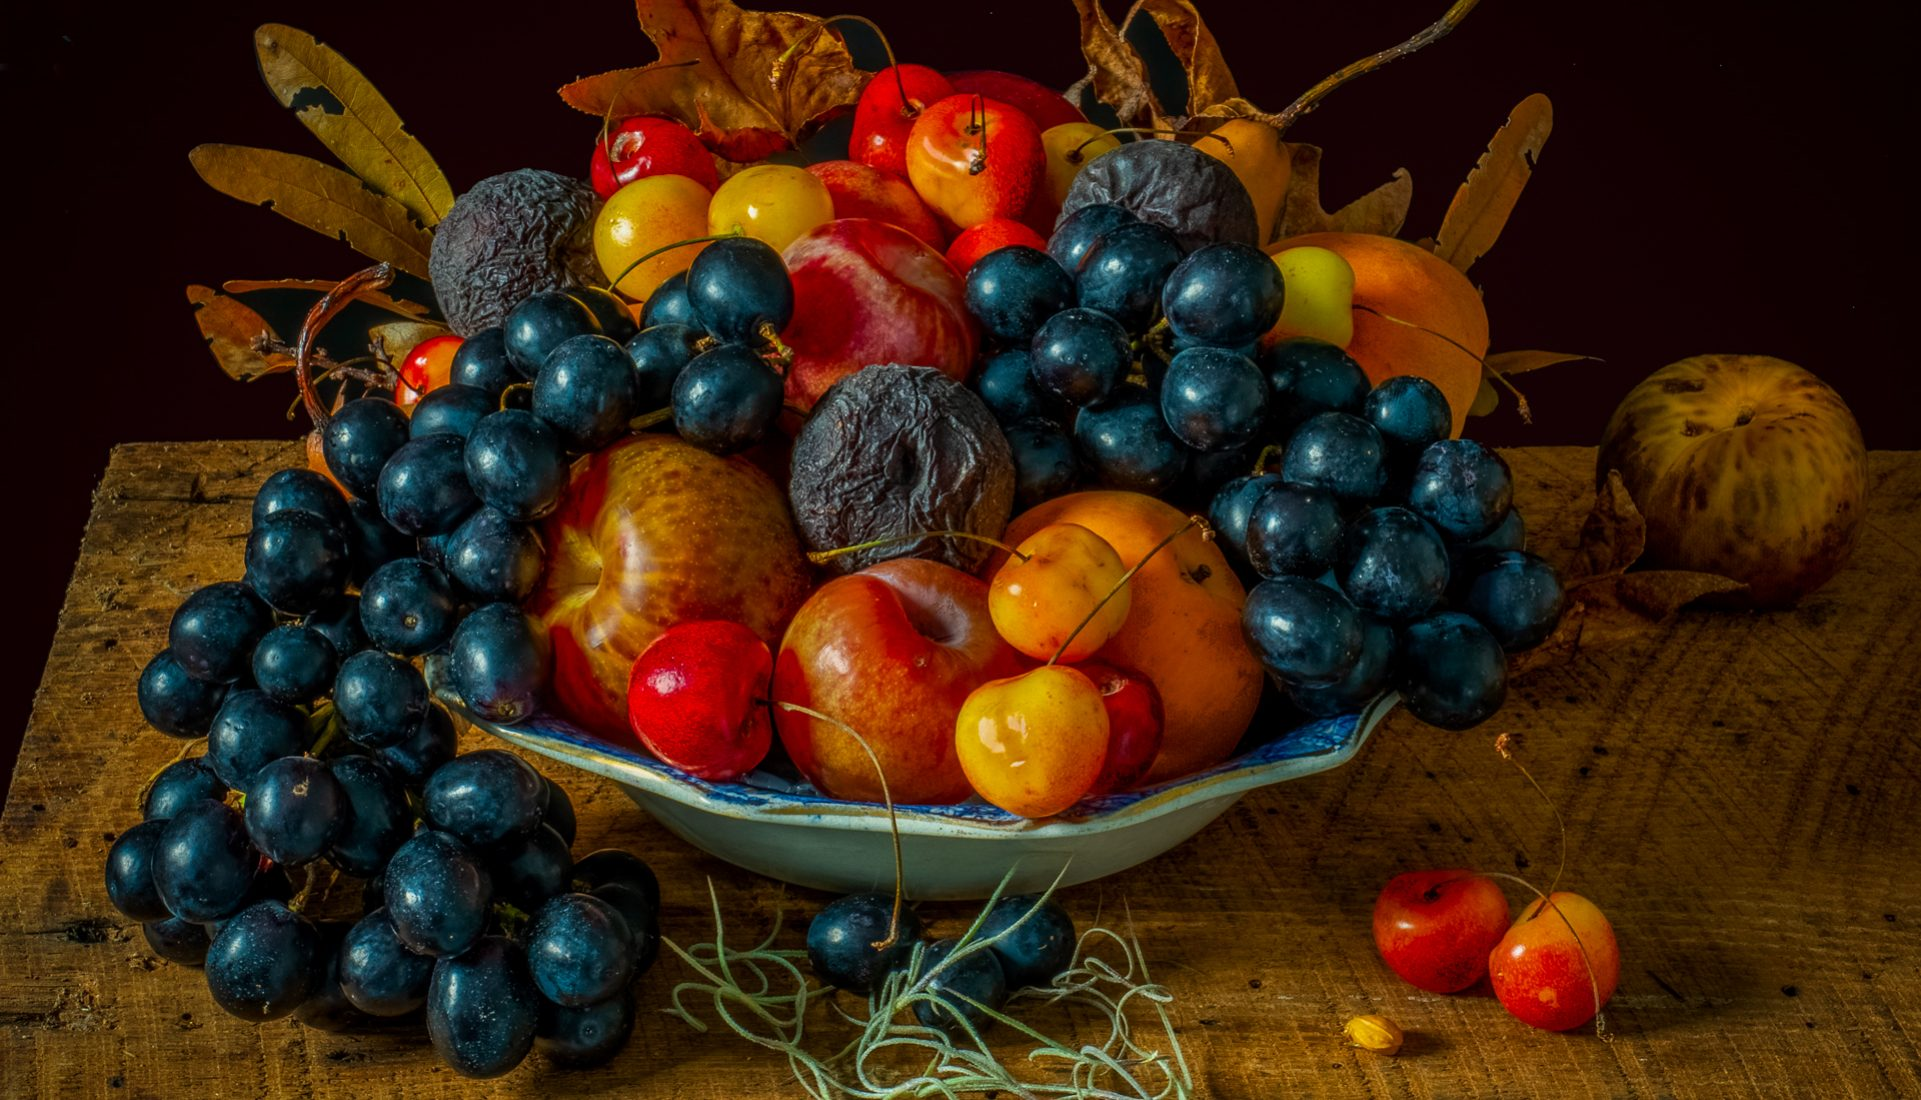 Seasonal Fruit | Still Life Photography